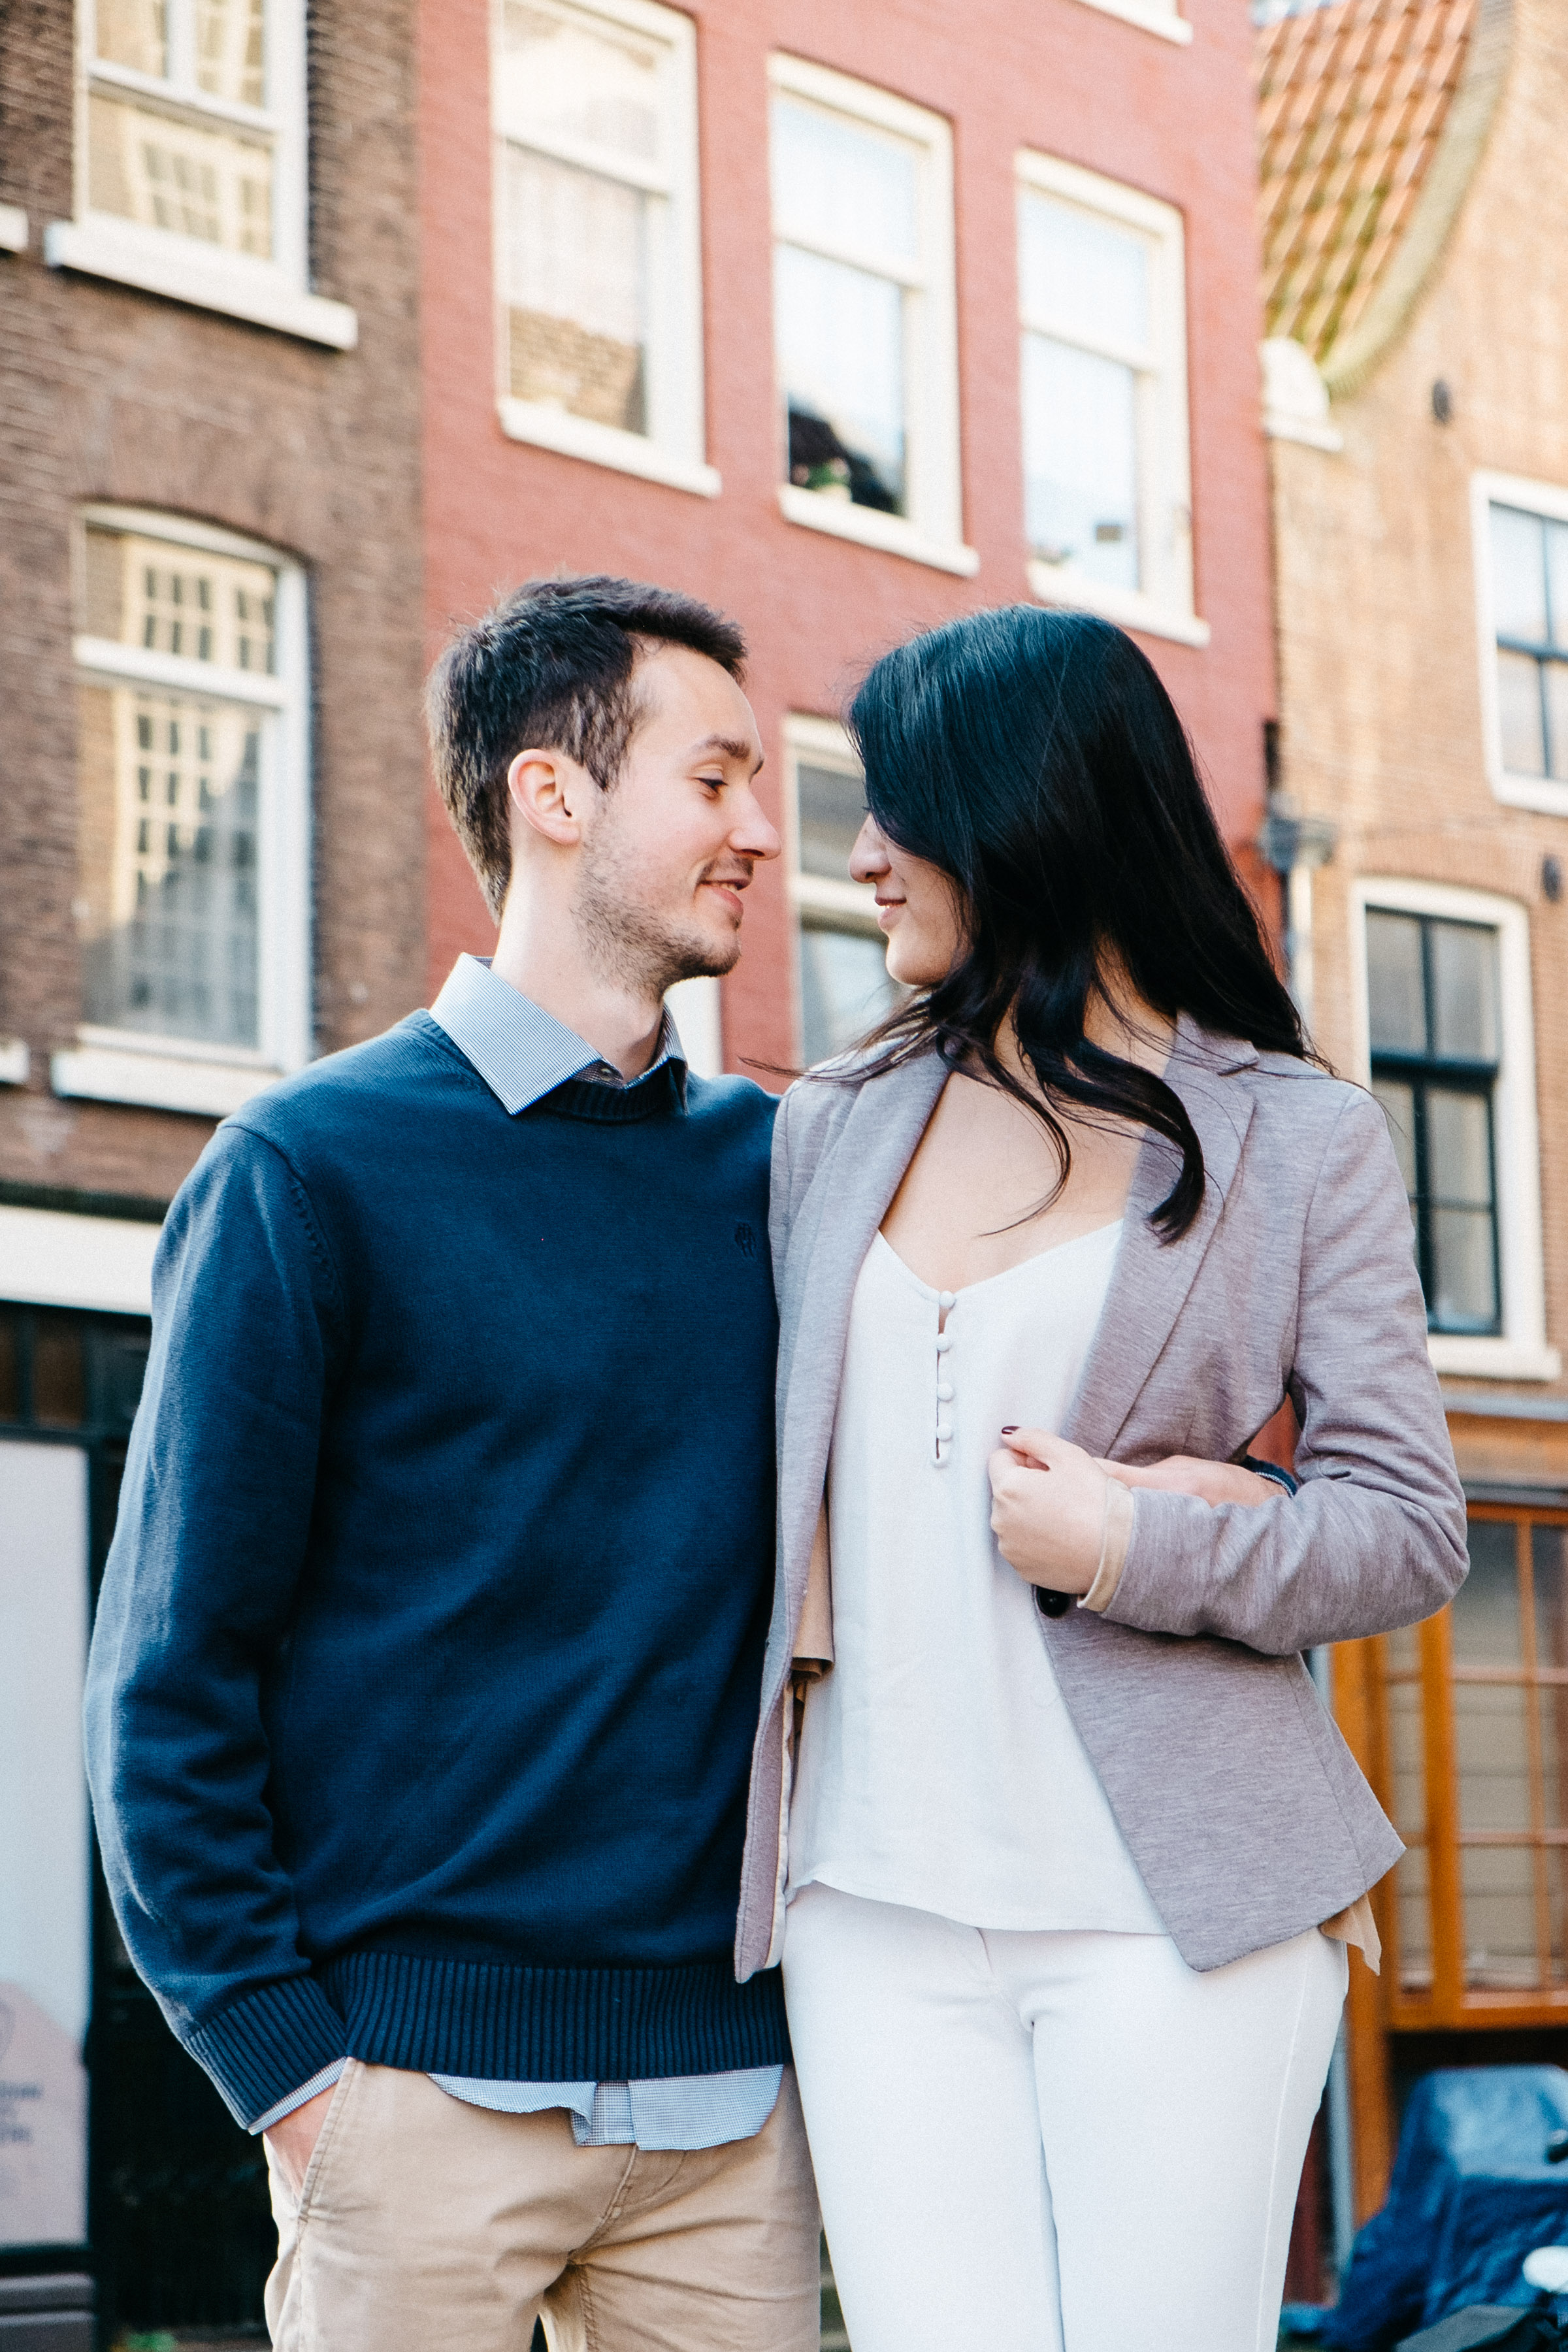 Thao & Janik in Amsterdam (22 of 51) - Jan Arsenovic Photography.jpg